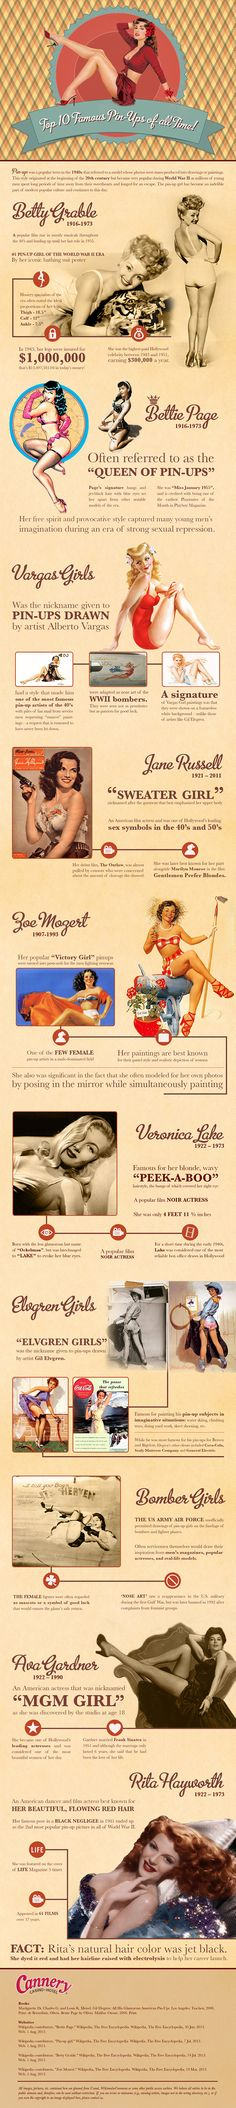 Famous Pin Ups Of All TimeRate this post We still have pin ups at our rooms don't we? They add up a unique feel to the room. But we are seeing these pin up posters from really long. Do we know the history of the pin ups? Pin Up Vintage, Retro Pin Up, Vintage Beauty, Retro Vintage, Vintage Stuff, Estilo Pin Up, Rockabilly Pin Up, Rockabilly Fashion, Rockabilly Outfits